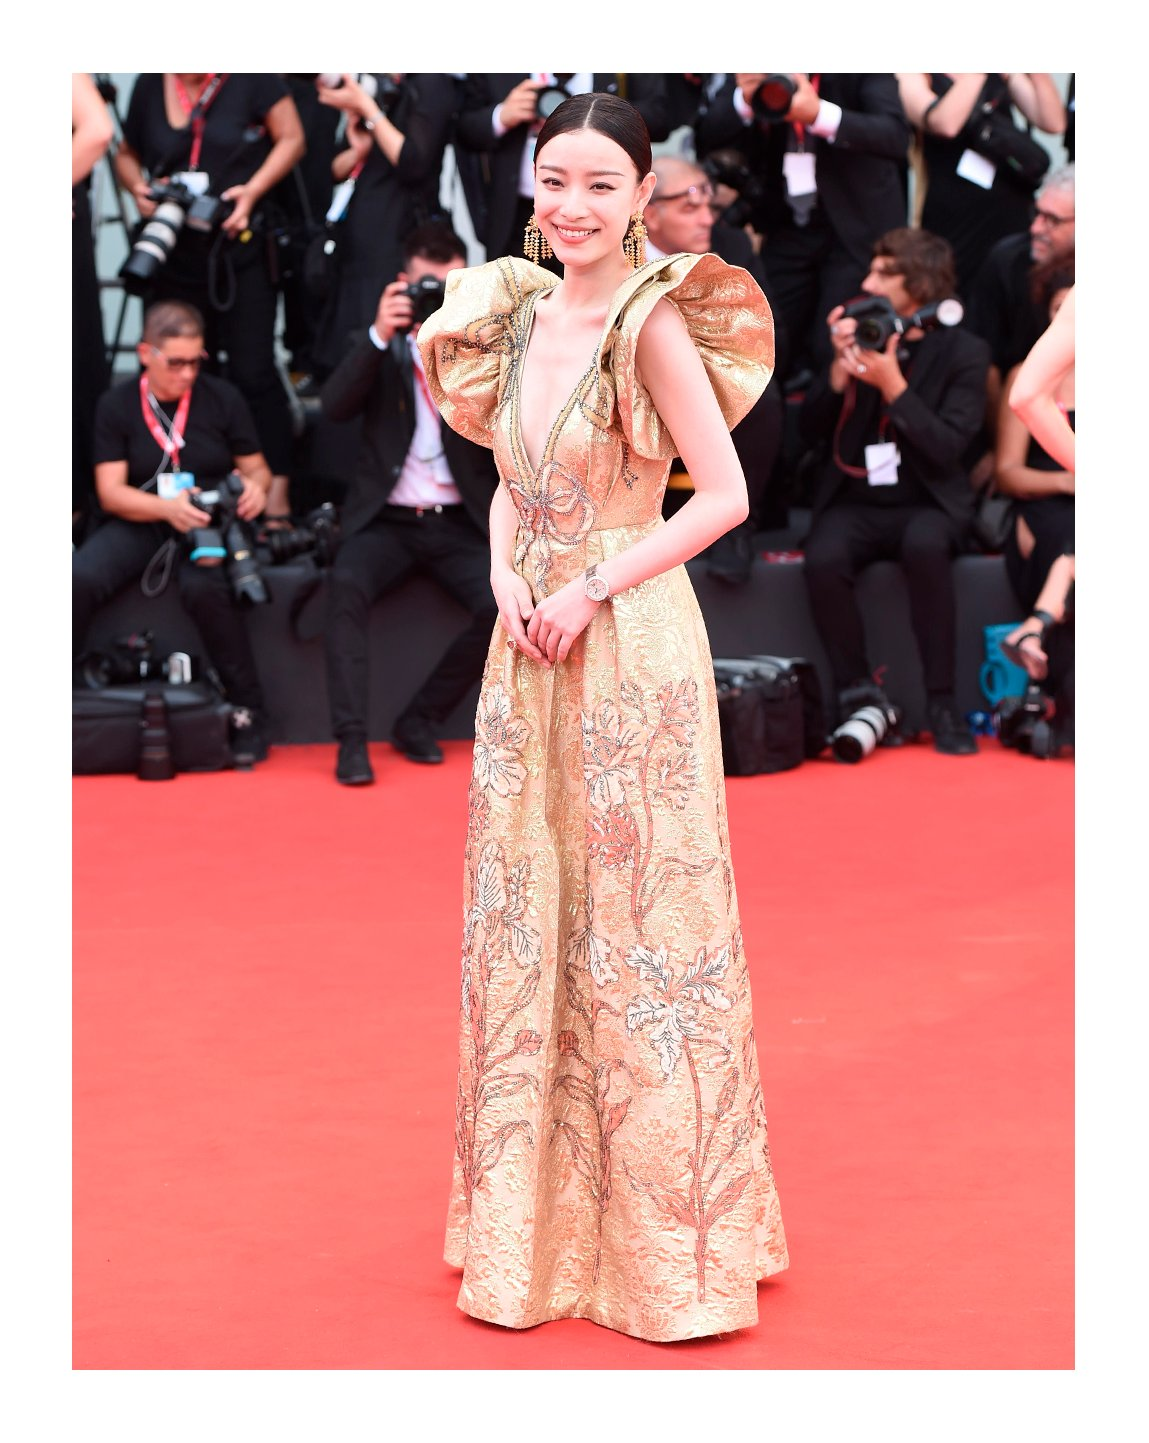 At the 76th Venice International Film Festival, #CaptainMiao wore a #Gucci Made to Order gown with ruffles and embroidered details. #NiNi completed her look with a pair of #GucciHighJewelry earrings and a solitaire ring.  #AlessandroMichele #BiennaleCinema2019 #Venezia76 https://t.co/9zYvQADWm2